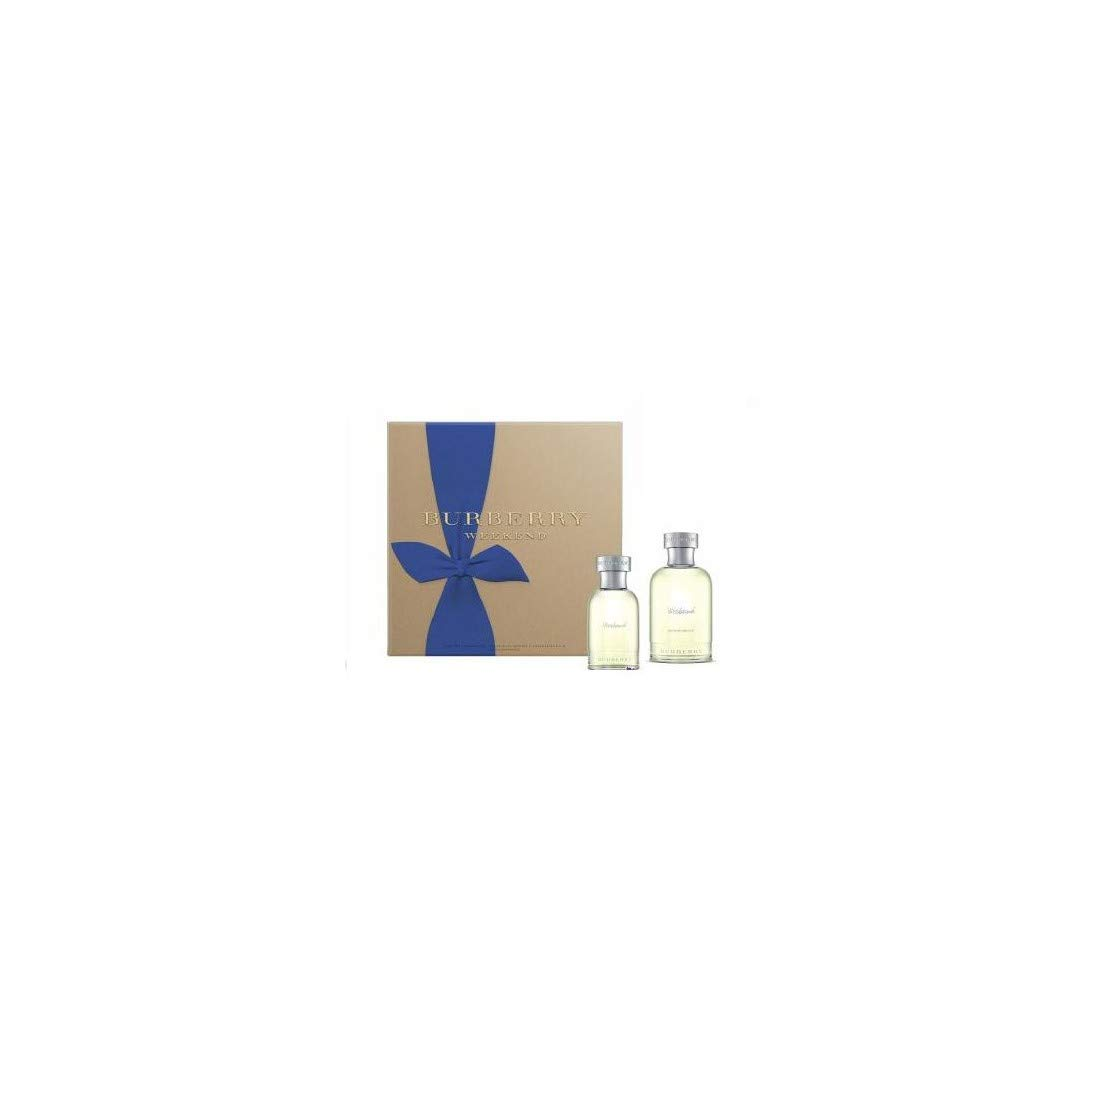 Burberry Weekend For Men Set - Eau de Toilette 50 ml + After Shave 100 ml